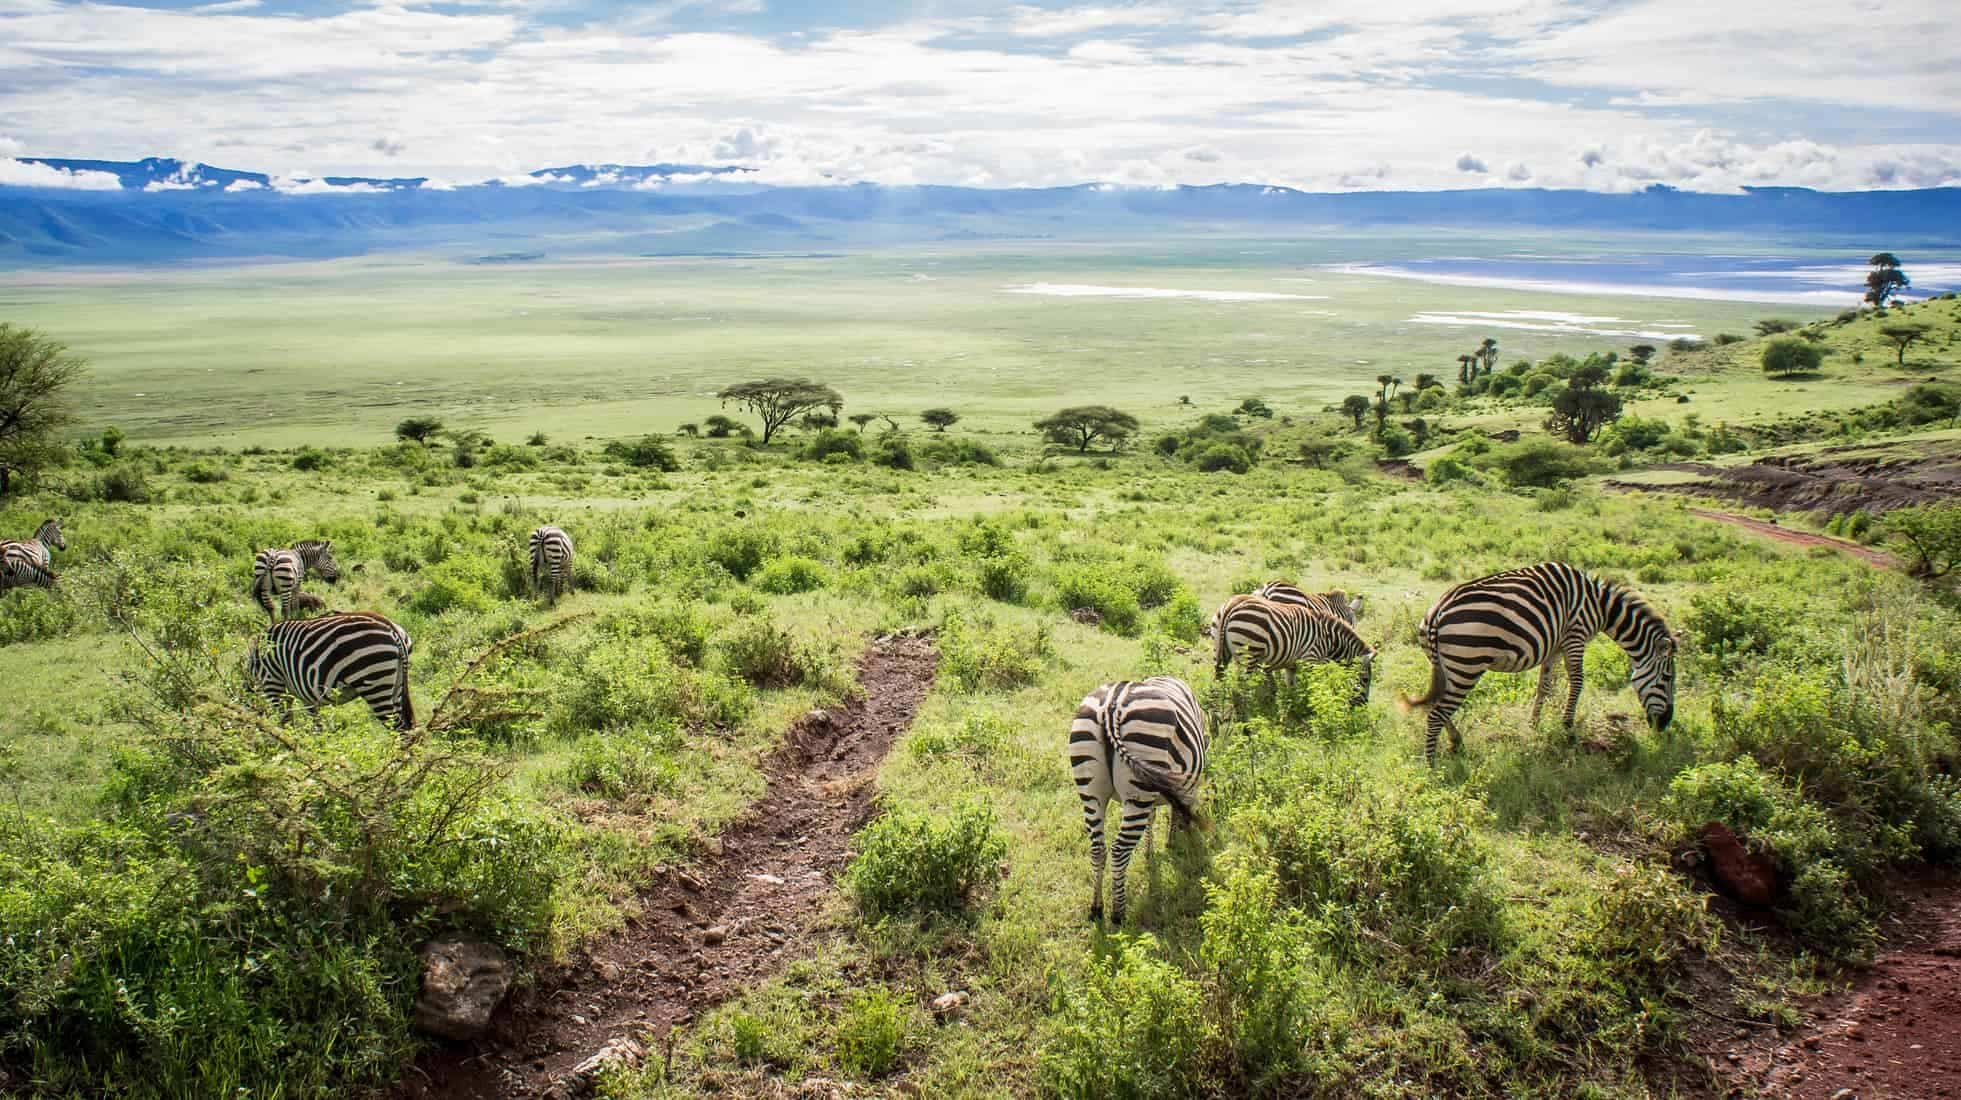 Travel to Africa. This shot of zebras grazing was taken at the Ngorongoro Crater, Tanzania, Africa.